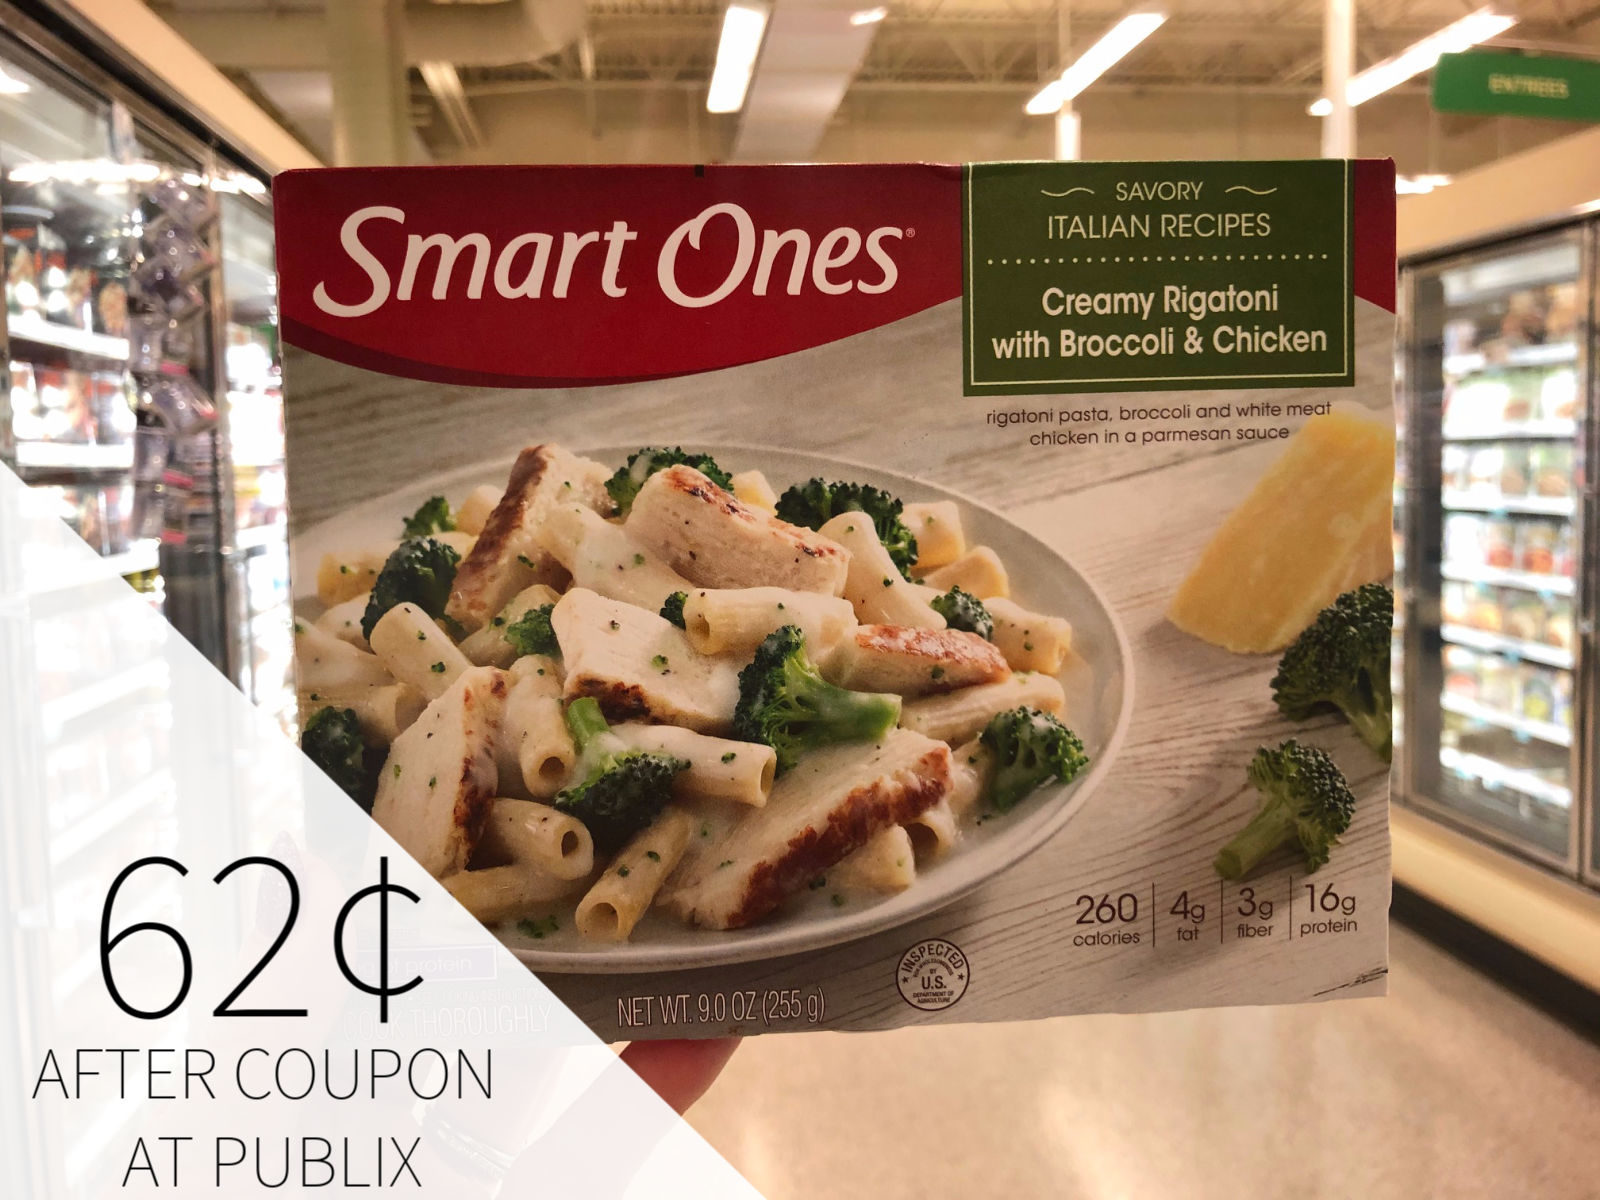 Smart Ones Entrees As Low As 62¢ At Publix on I Heart Publix